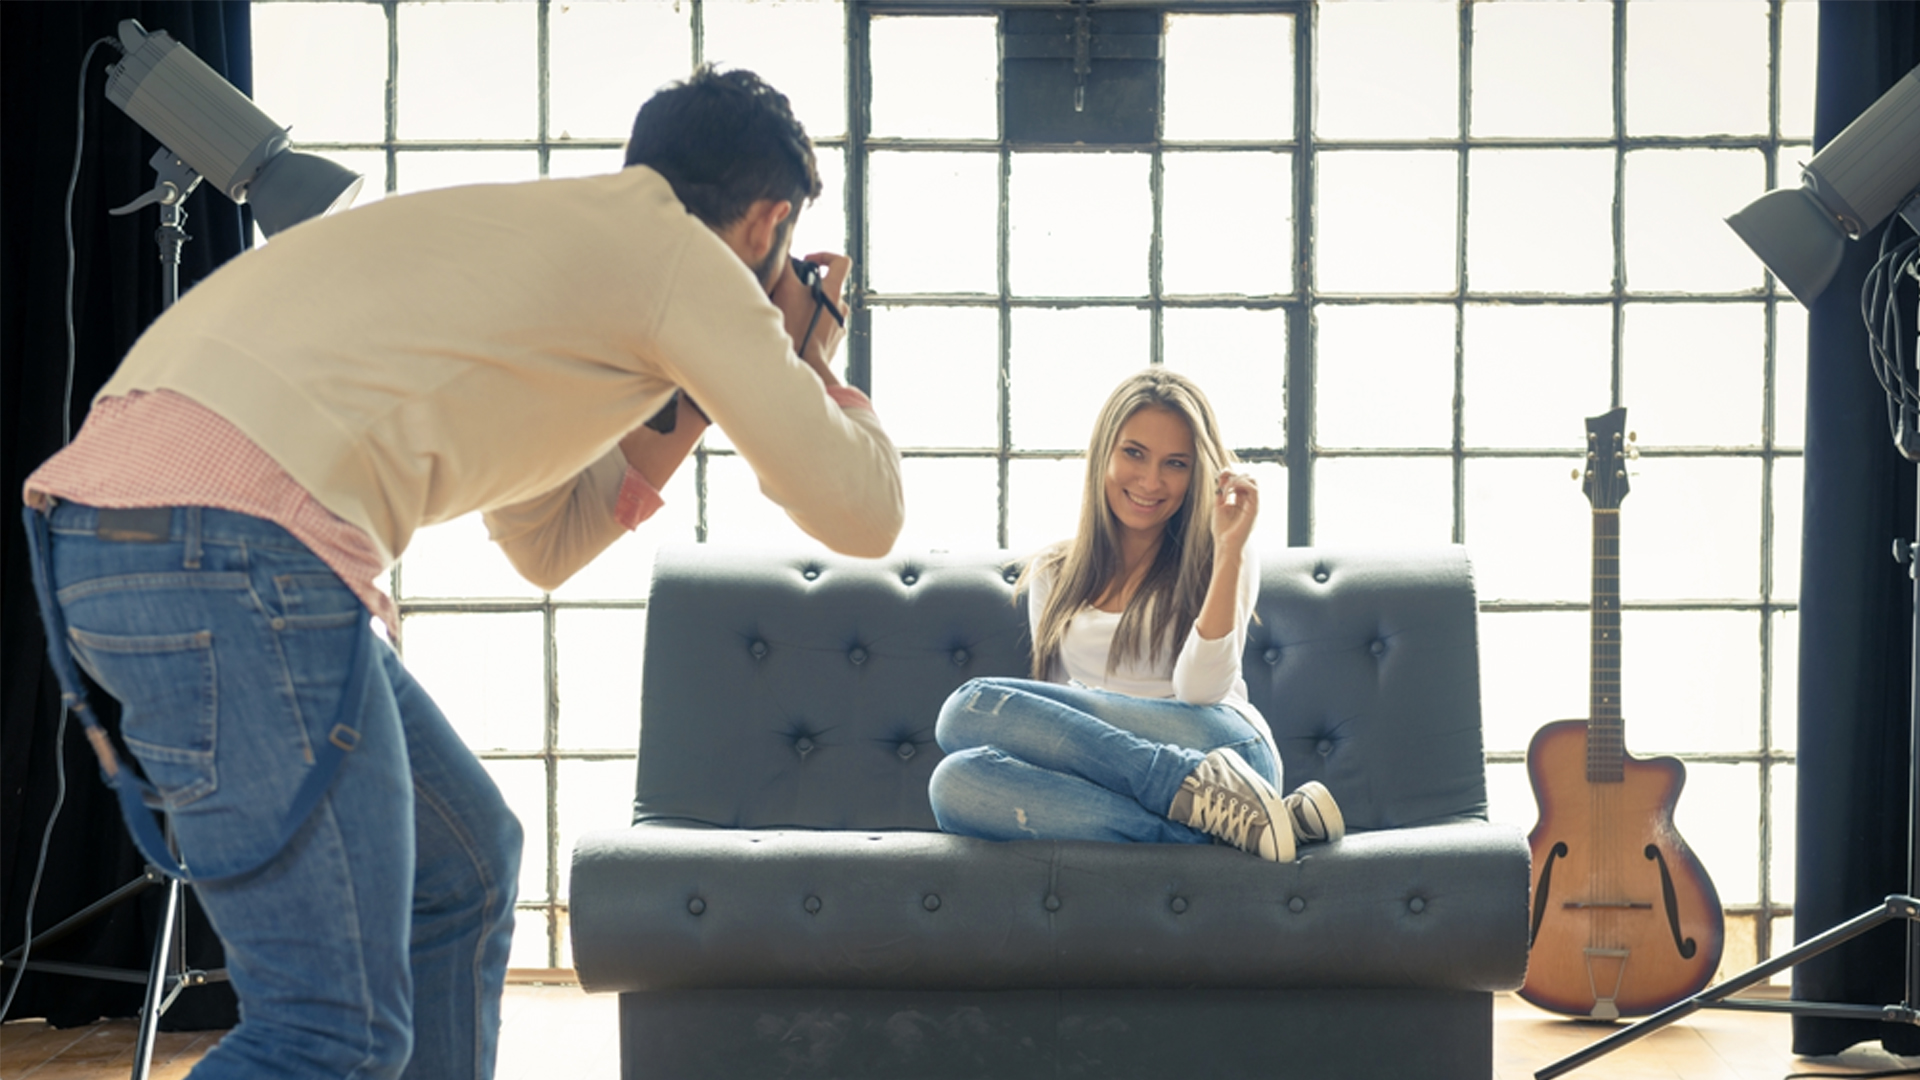 Photographer Wanted $5 per hour - should you take the job?